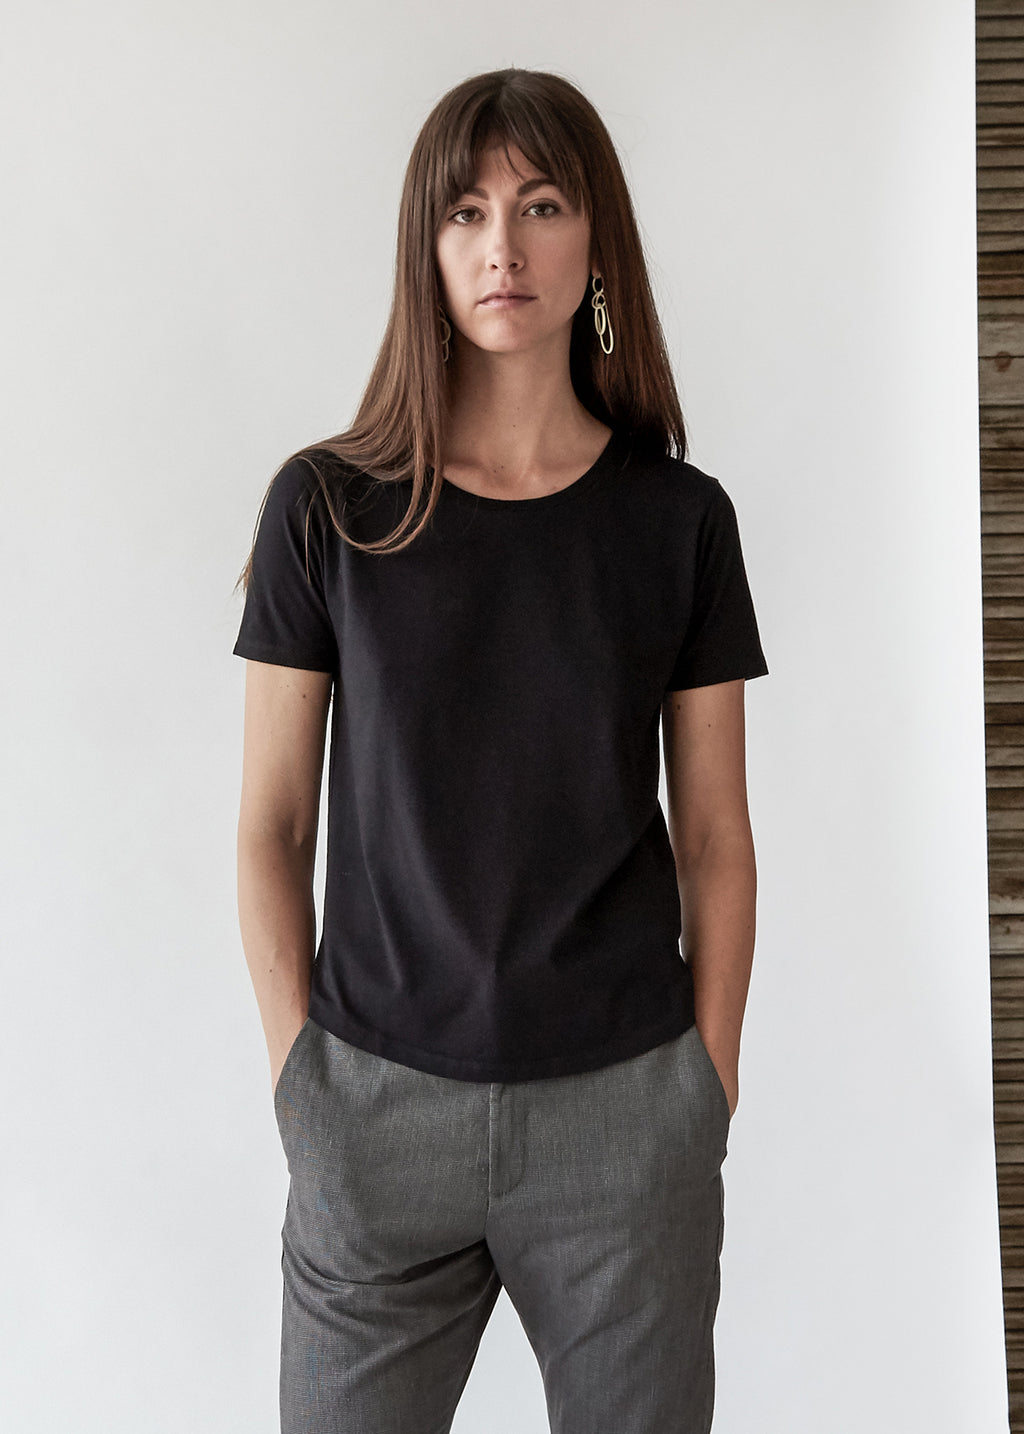 One Tee in Black